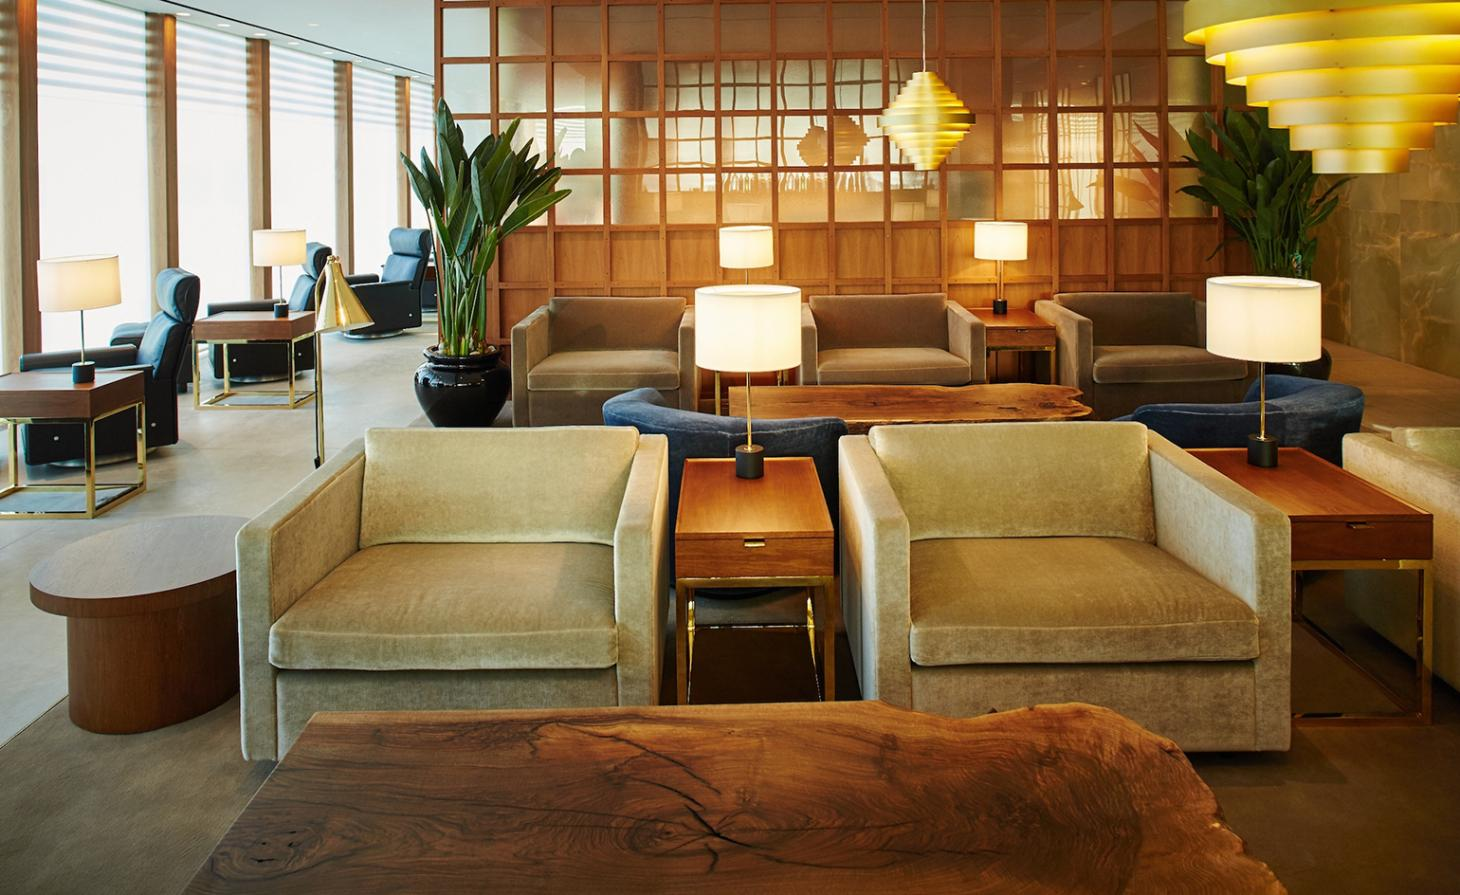 Cathay Pacific Lounge Heathrow Restaurant Review London